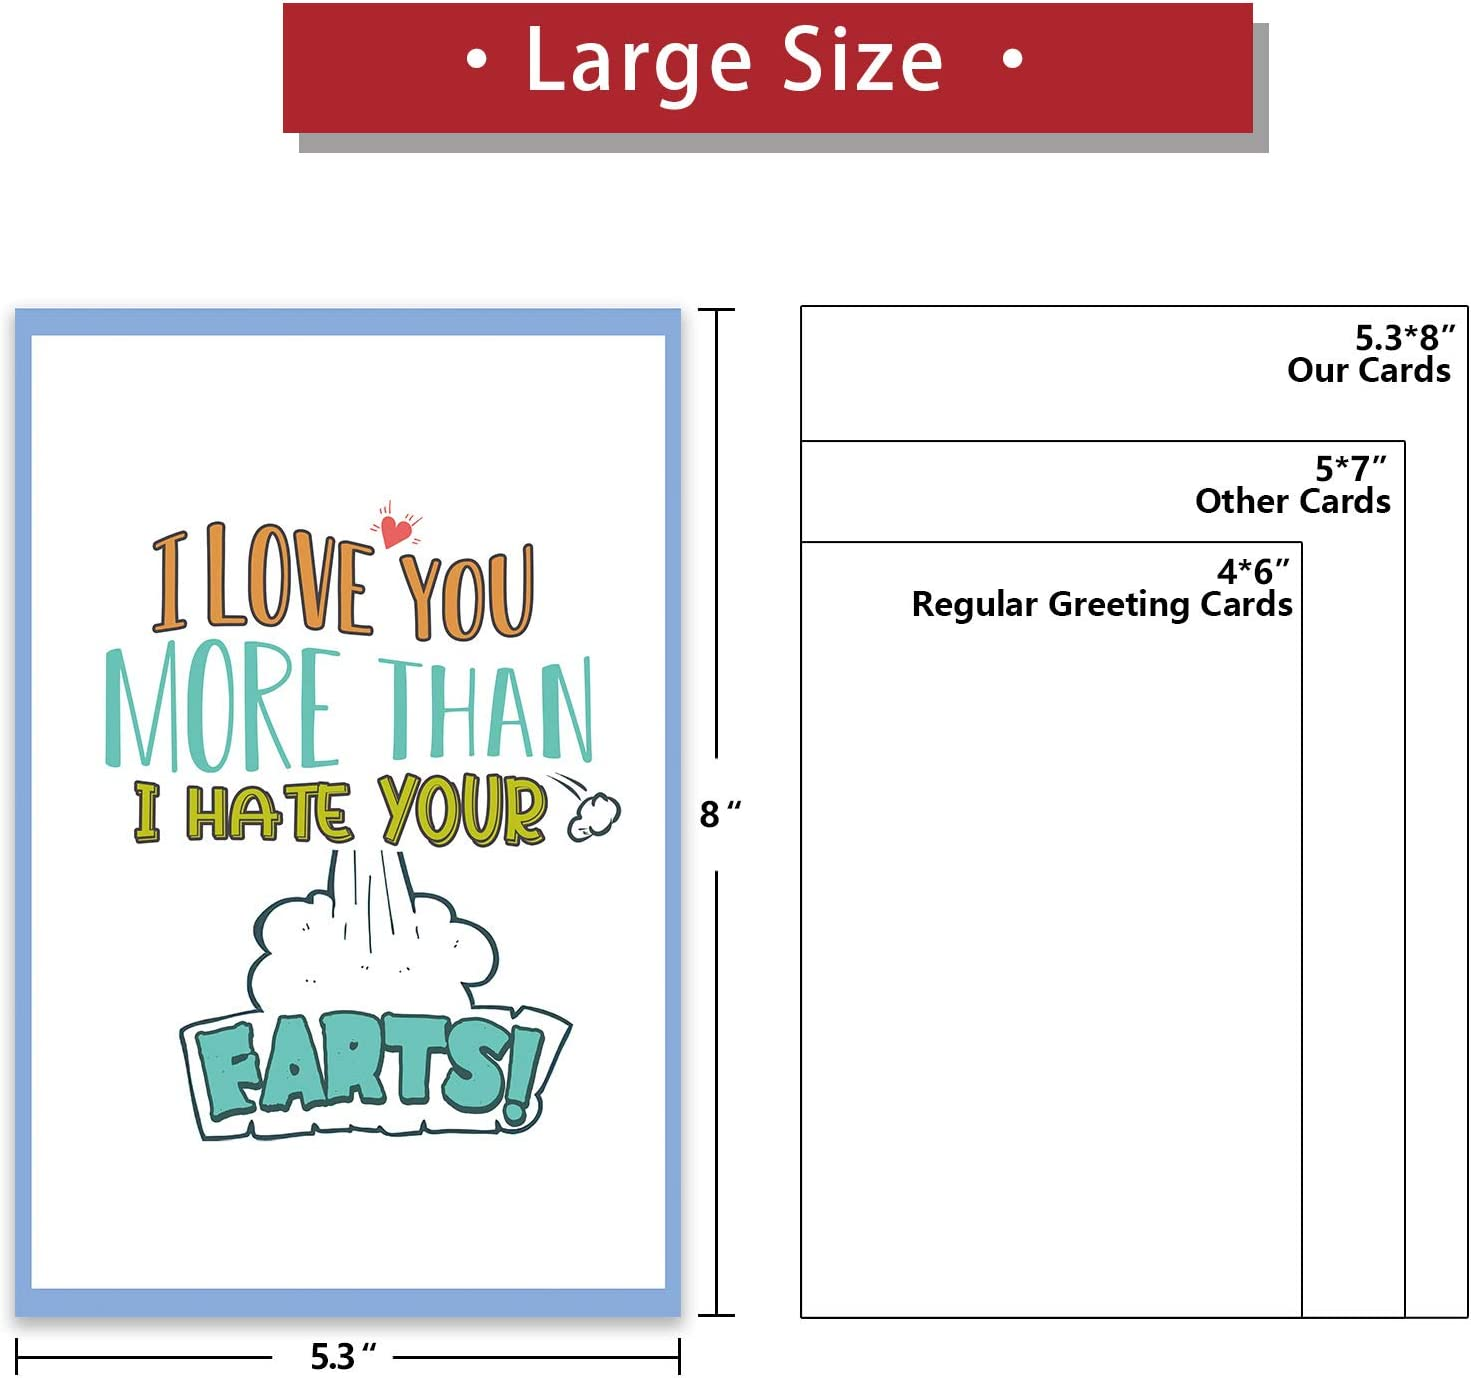 Funny farting valentines card for him funny heart card for her boyfriend card for him funny joke anniversary card humour birthday card NC98